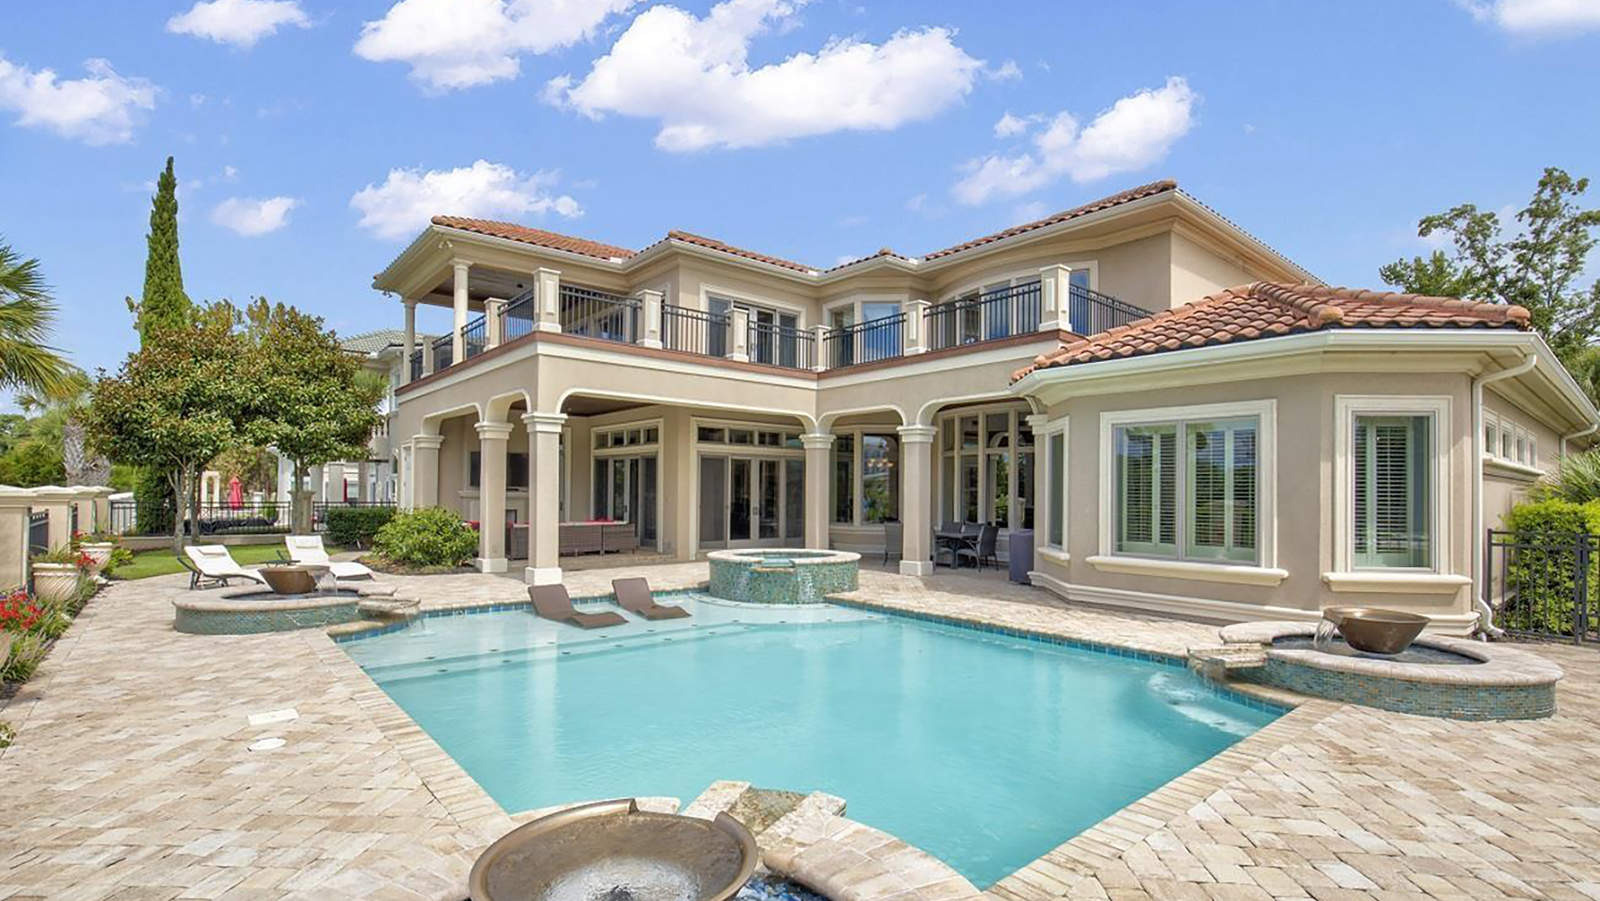 CRG Agent Top Five Mediterranean-Style Home For Sale